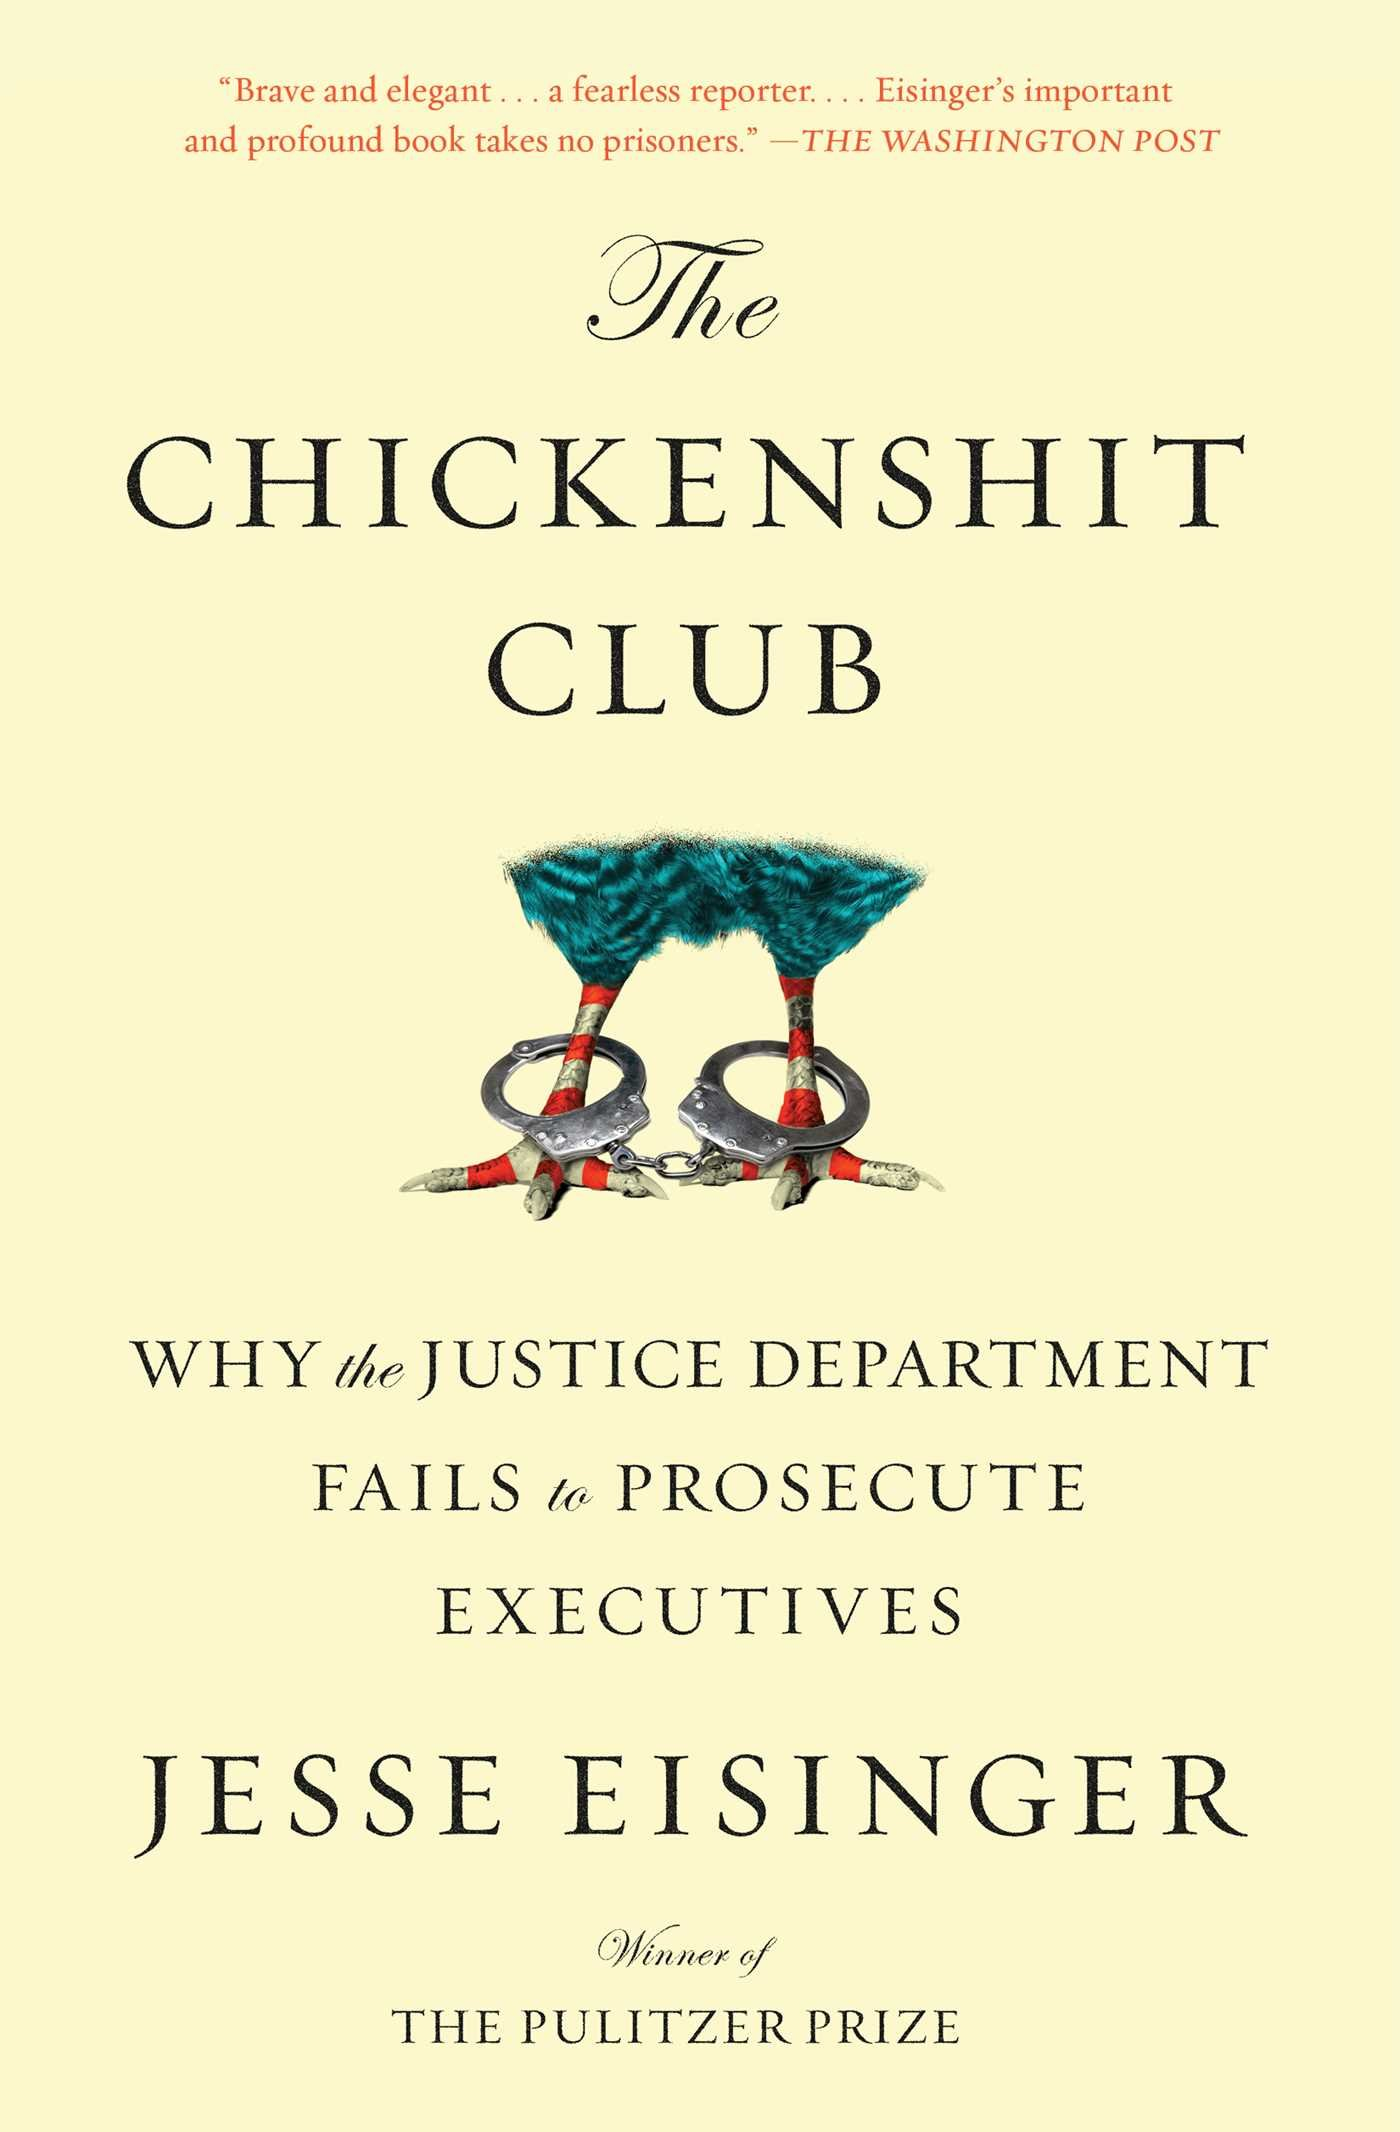 Download The Chickenshit Club: Why the Justice Department Fails to Prosecute Executives pdf epub